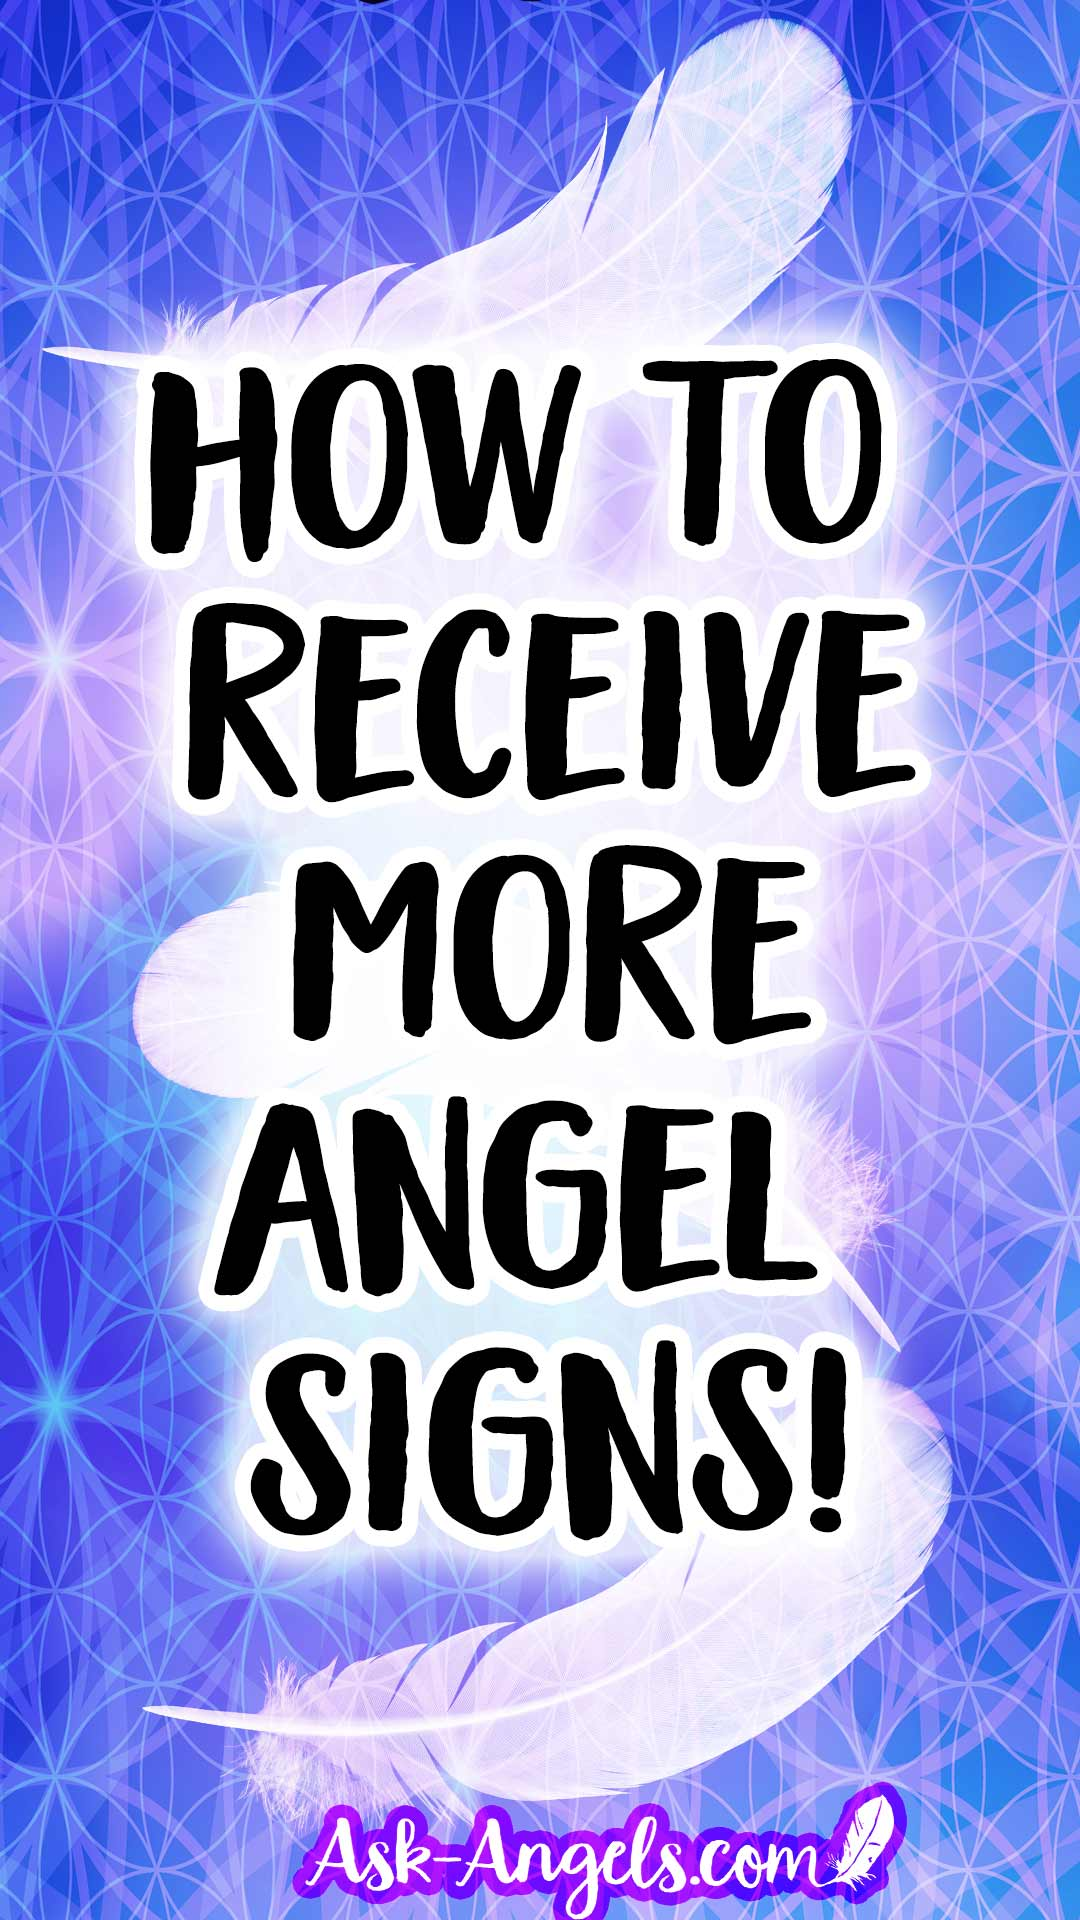 How to Receive More Angel Signs